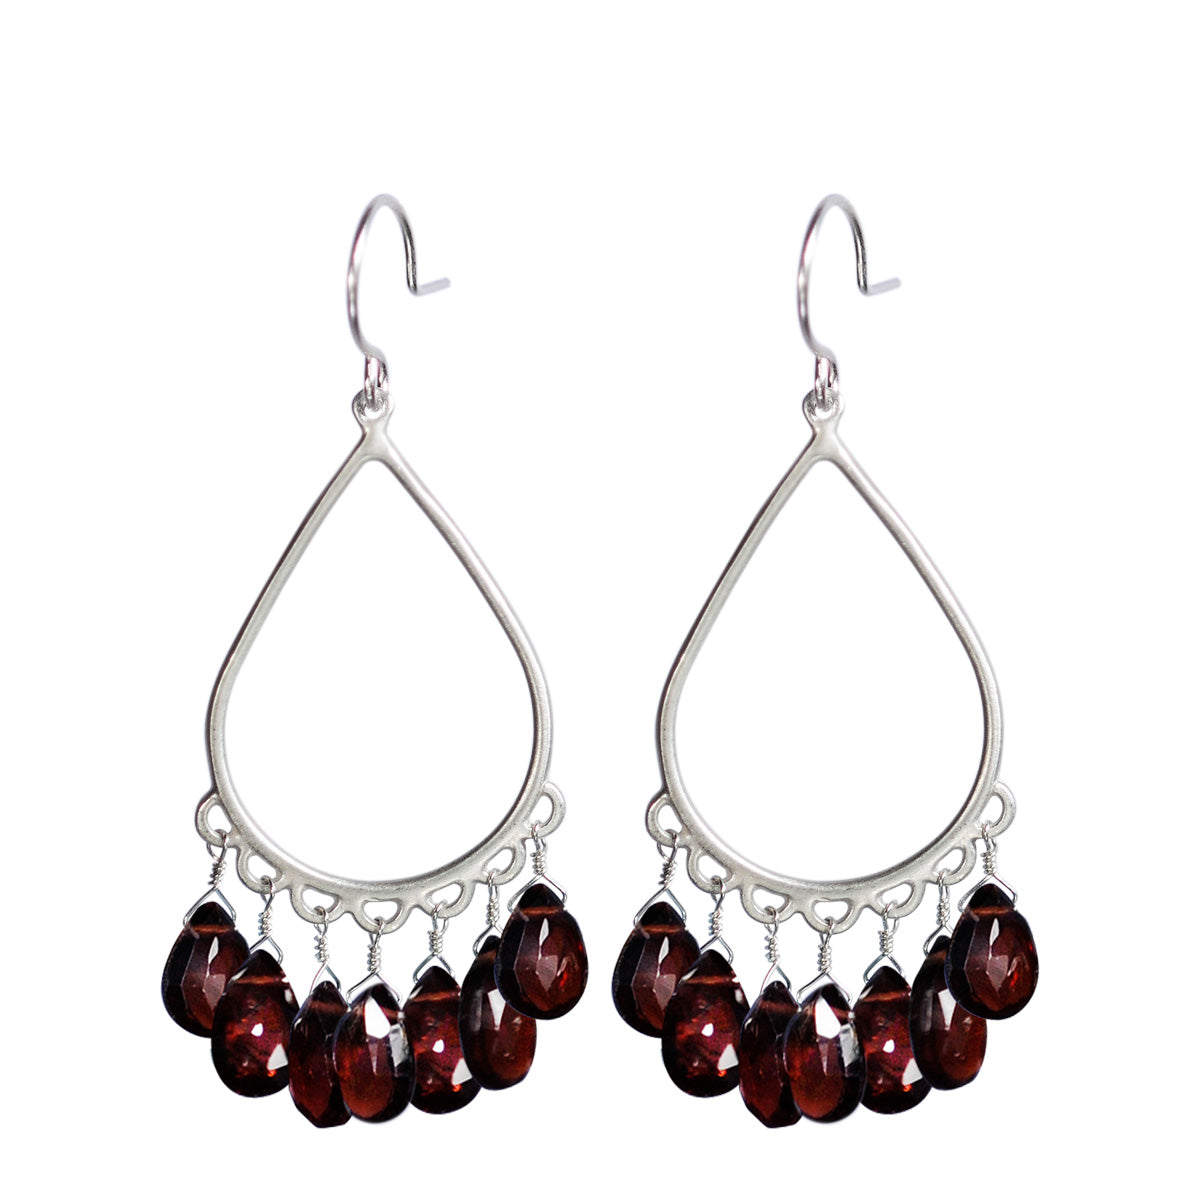 Sterling Silver Large Teardrop Earrings with Garnet